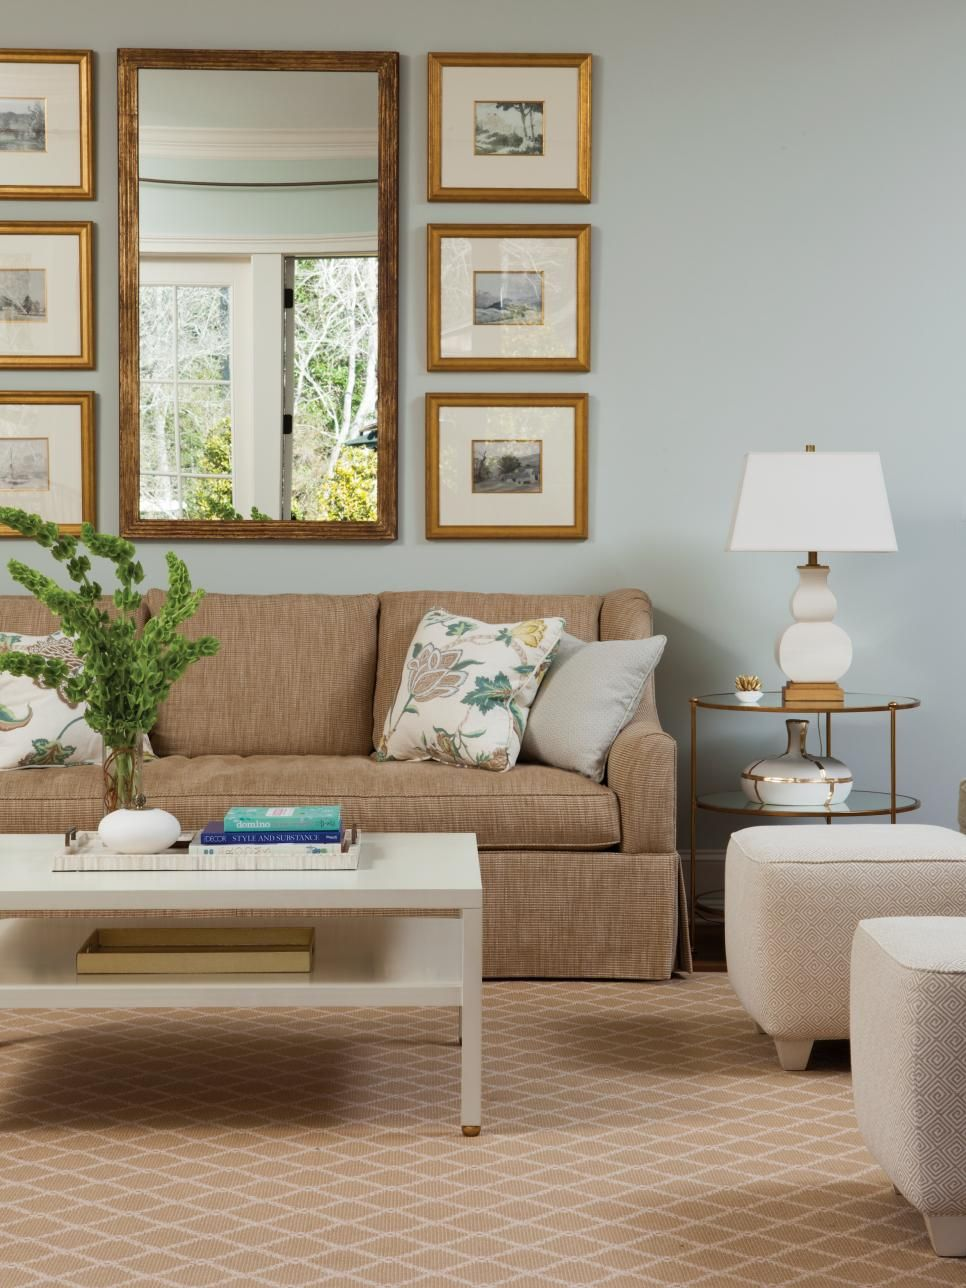 Light blue living room - Light Blue Walls Are Paired With Neutral Furniture And Accessories For A Light Airy Living